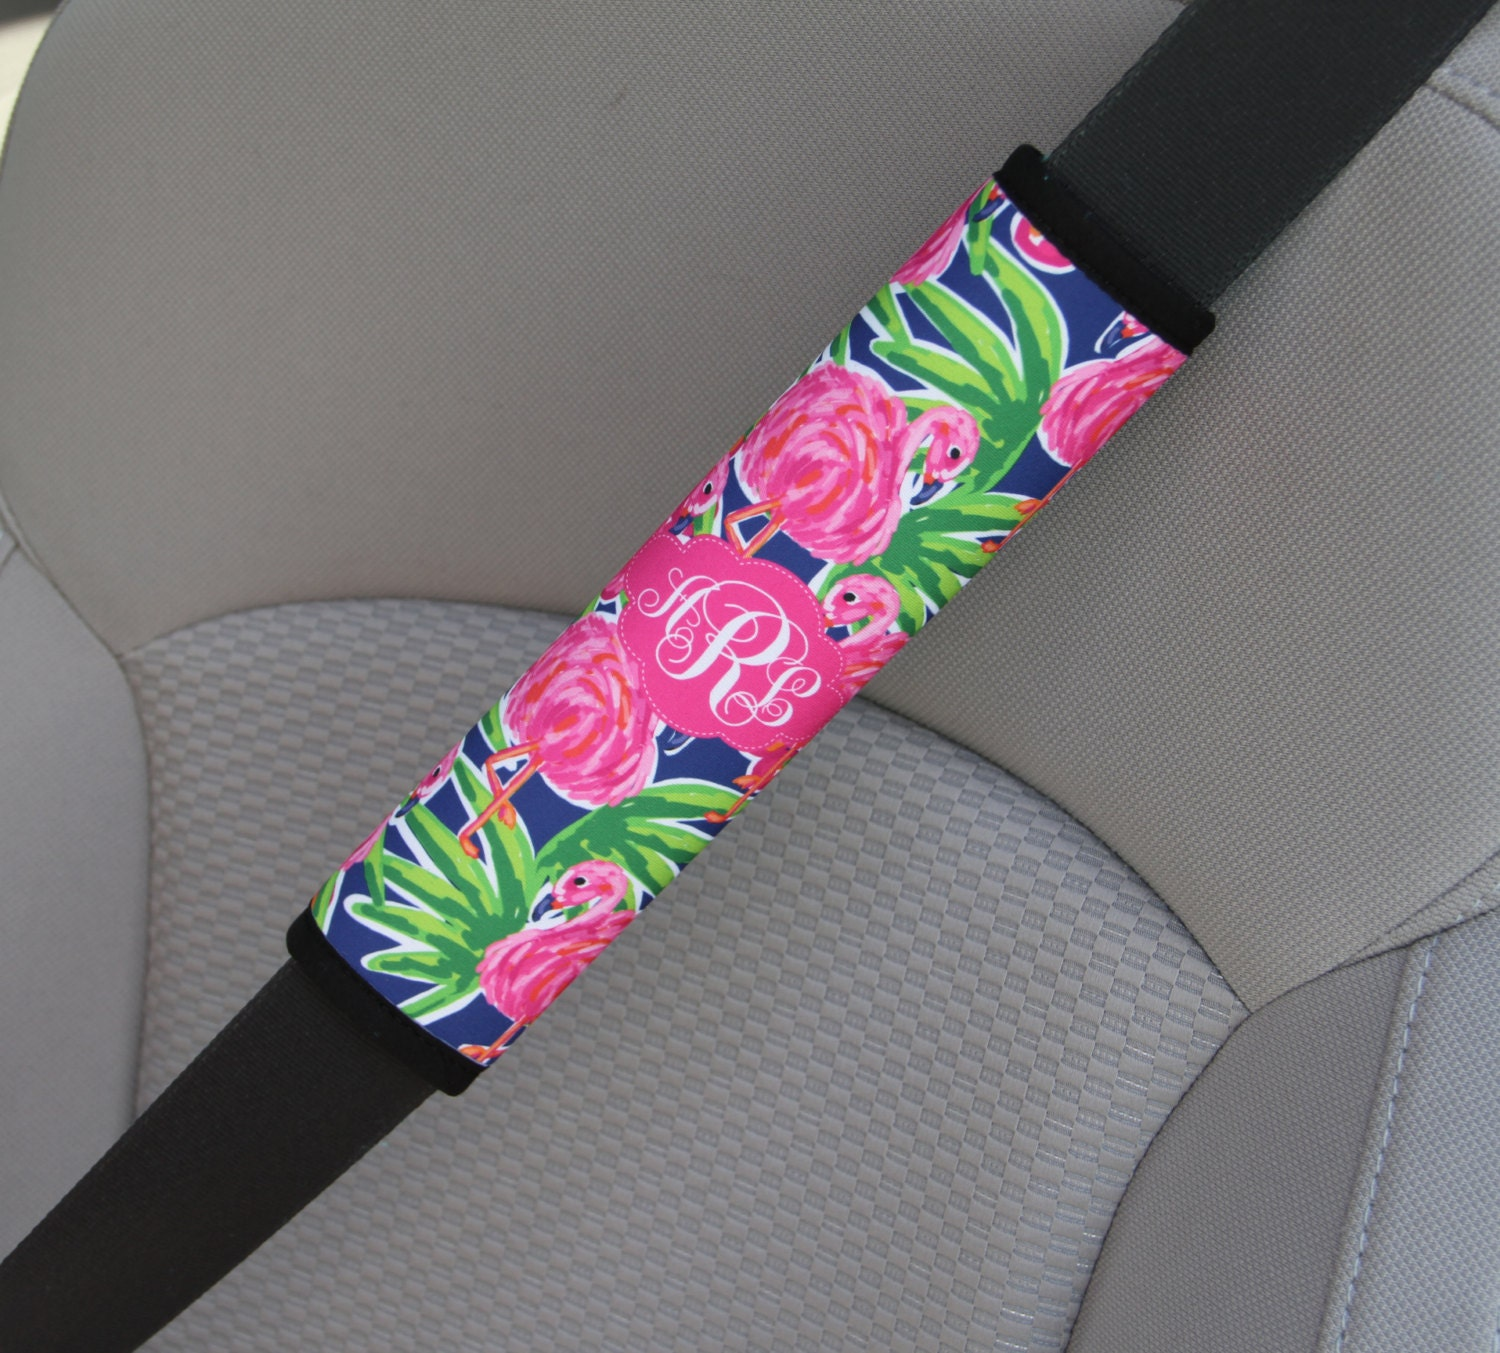 Monogrammed Seat Belt Cover  Personalized Custom Preppy Lilly Inspired Cute  Car Accessories for Women Seatbelt Cover Seat Belt Pad Flamingo. Monogrammed Seat Belt Cover  Personalized Custom Preppy Lilly